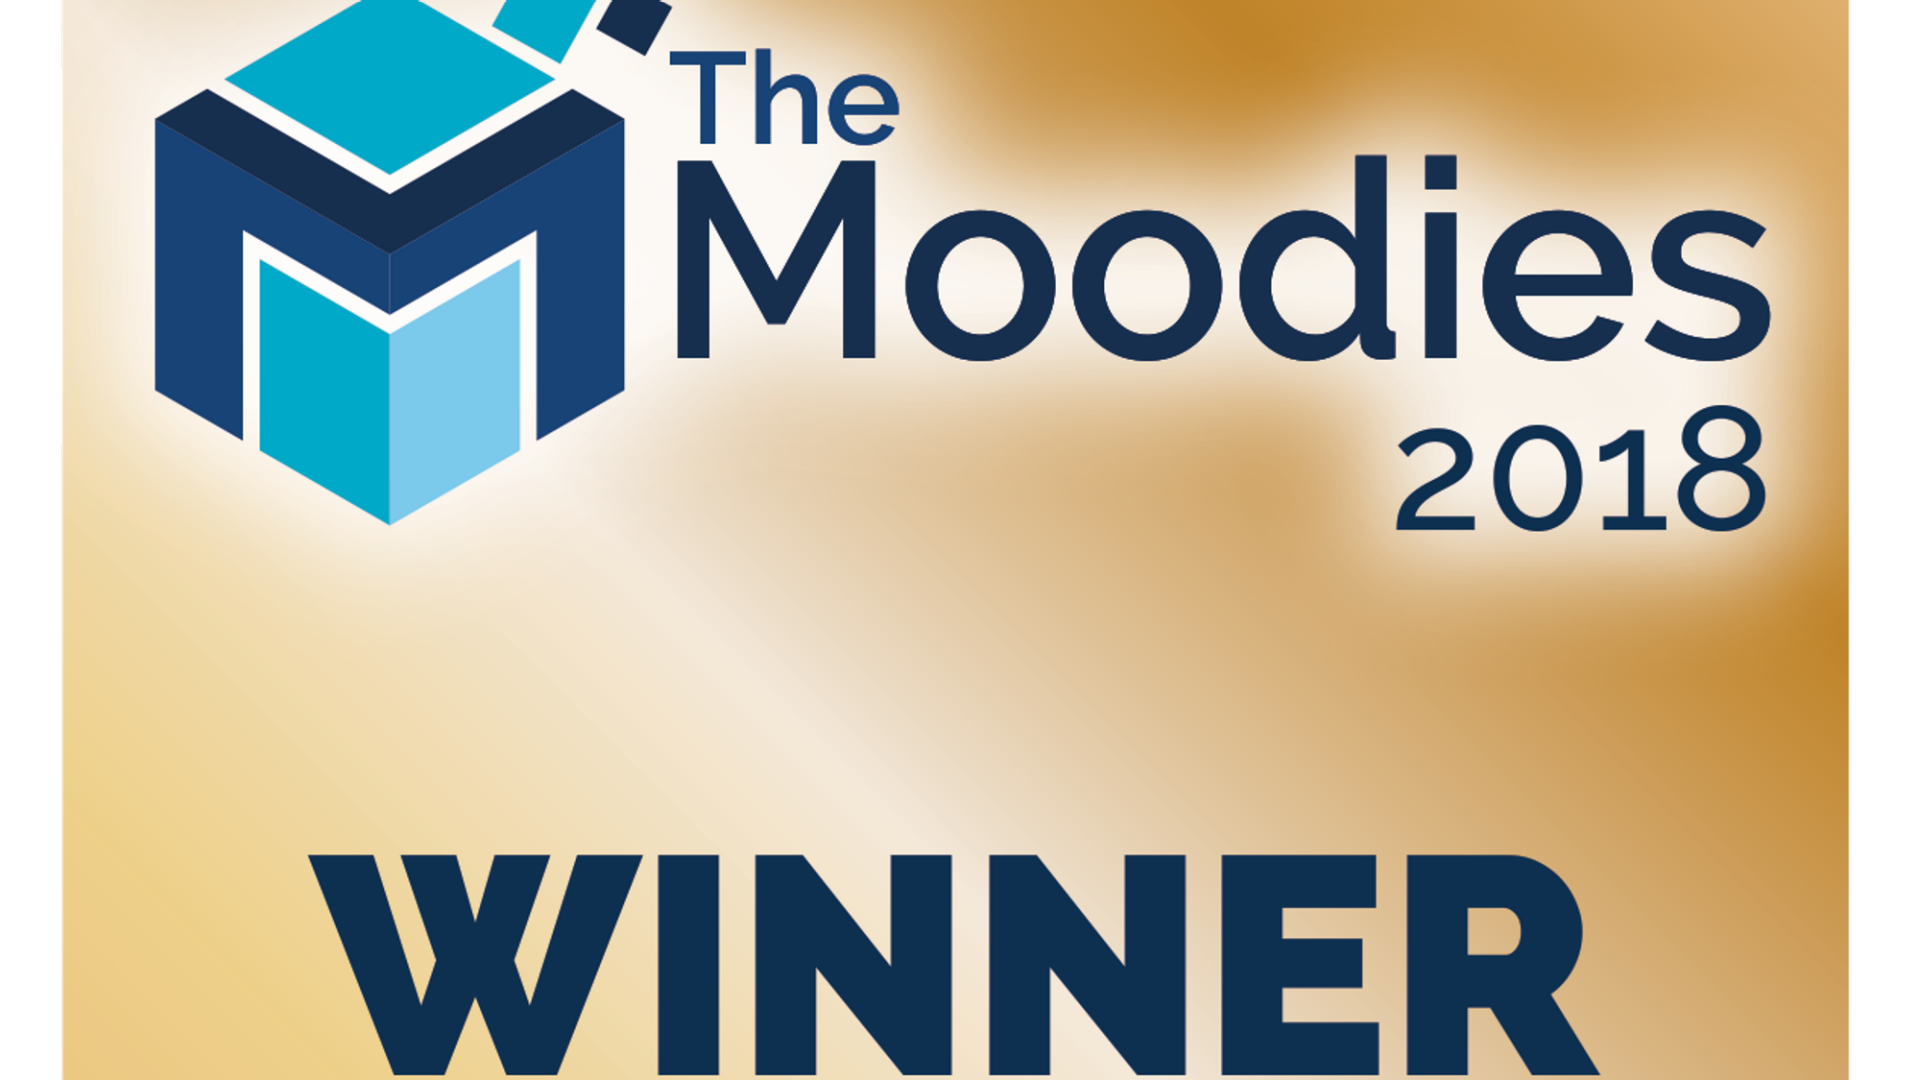 the moo s winner 2018